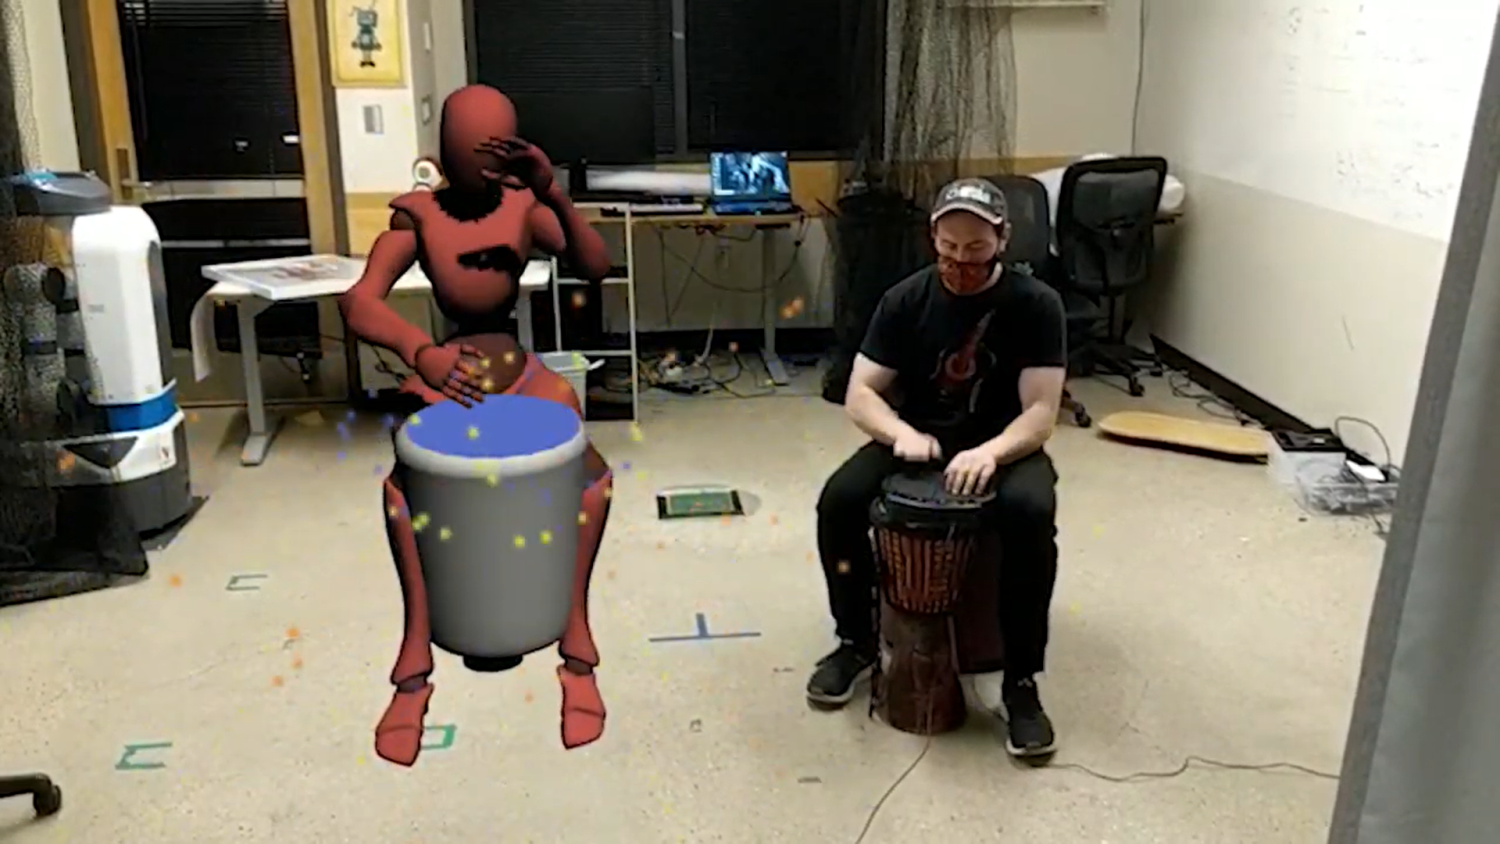 Torin Hopkins beats on a drum next to an avatar also beating on a drum